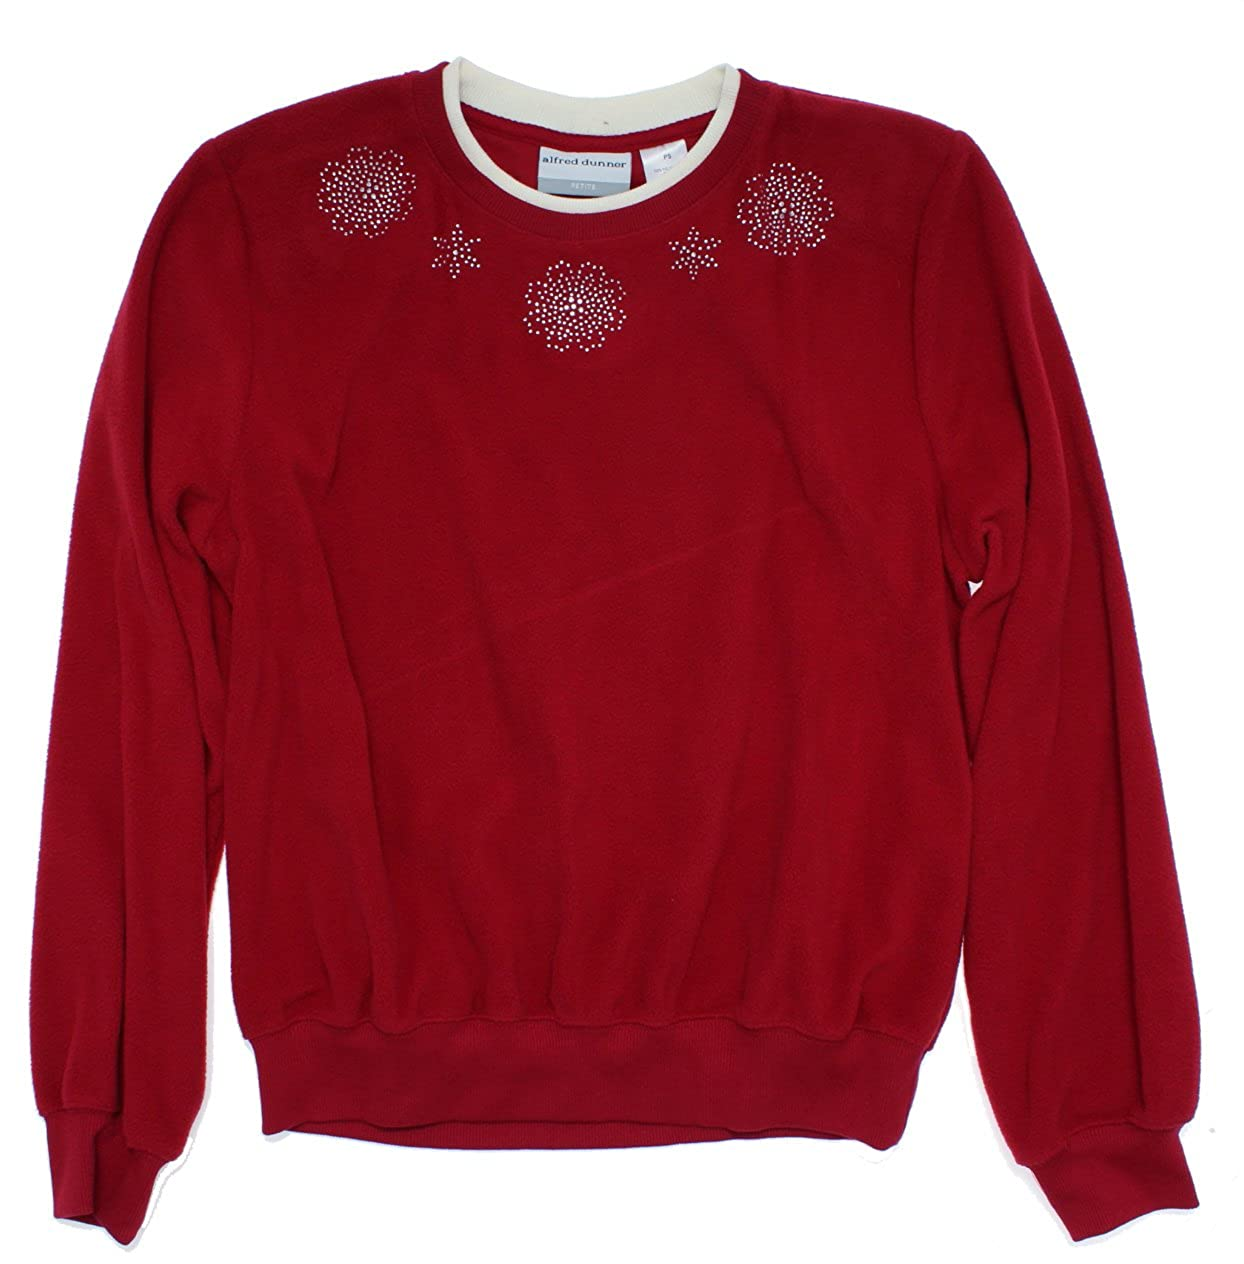 89e0bc399e8 Amazon.com  Alfred Dunner Womens Petites Pullover Embellished Casual Top   Clothing